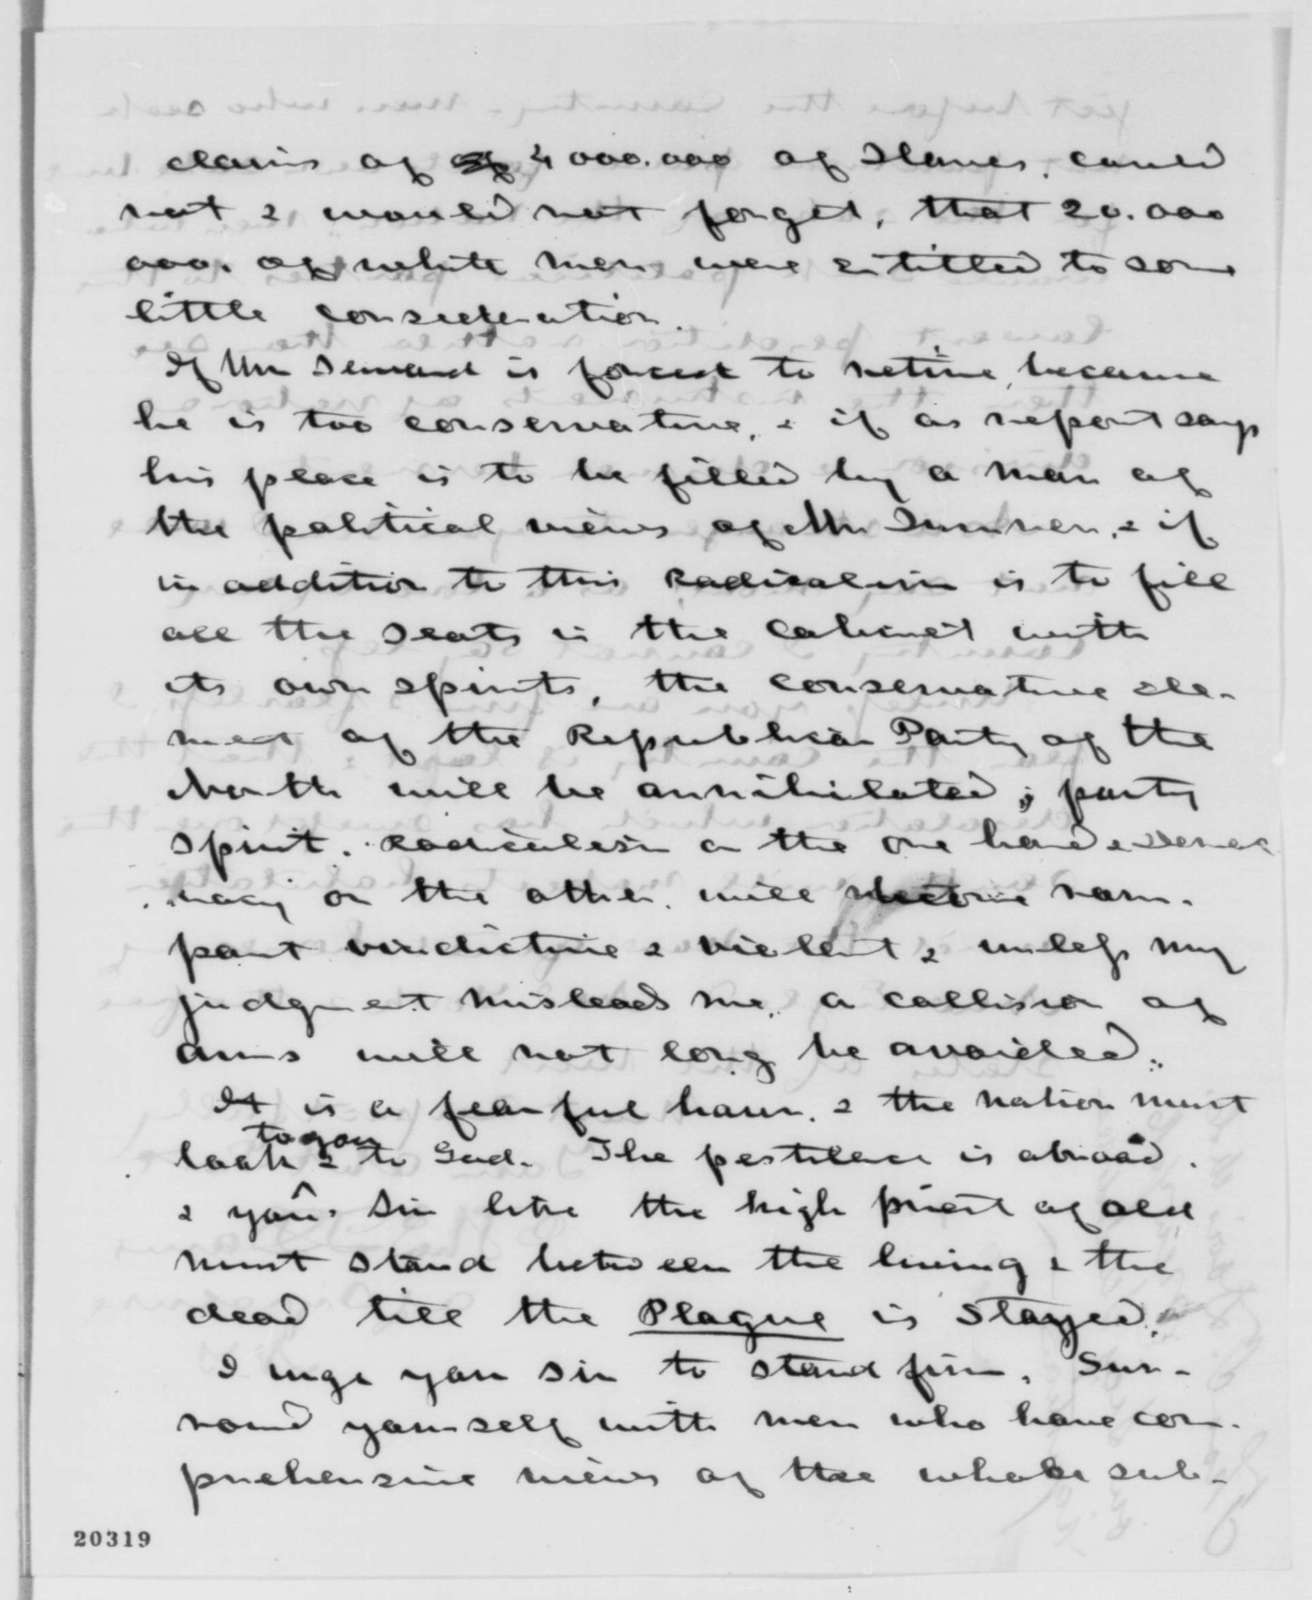 Thomas T. Davis to Abraham Lincoln, Saturday, December 20, 1862  (Seward's resignation)